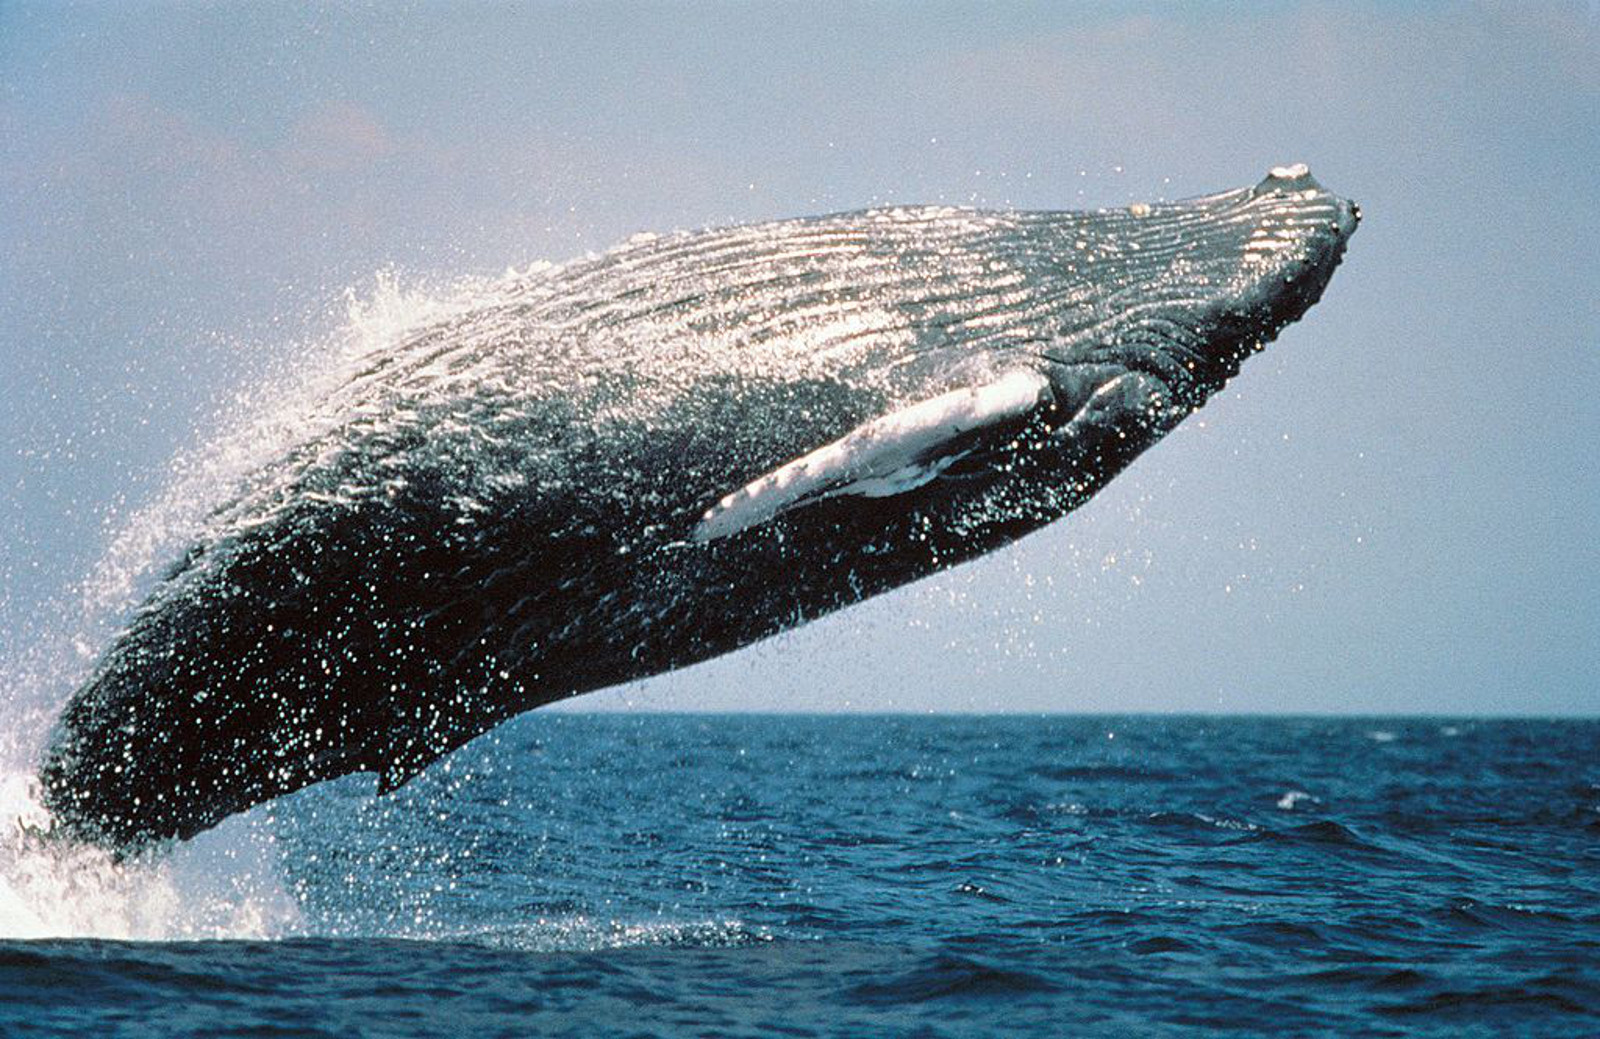 Whale Watching is in Full Swing in Norway! Check out These Amazing Views of Whales (PHOTOS)